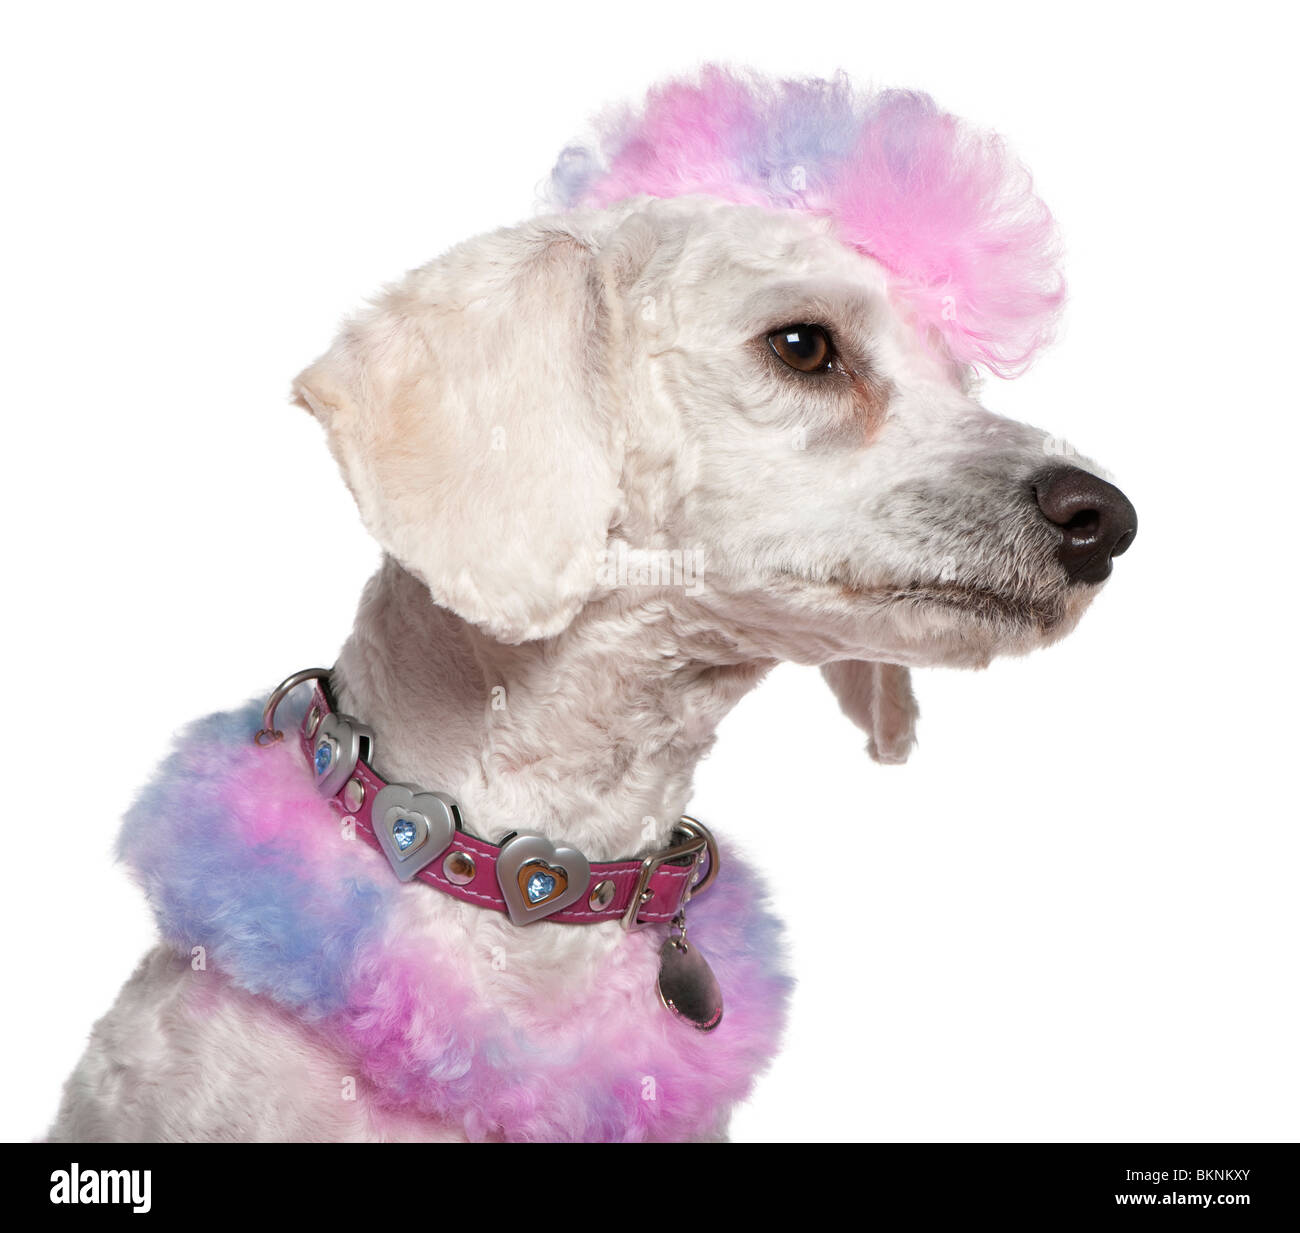 Groomed poodle with pink and purple fur and mohawk, 1 year old, in front of white background - Stock Image